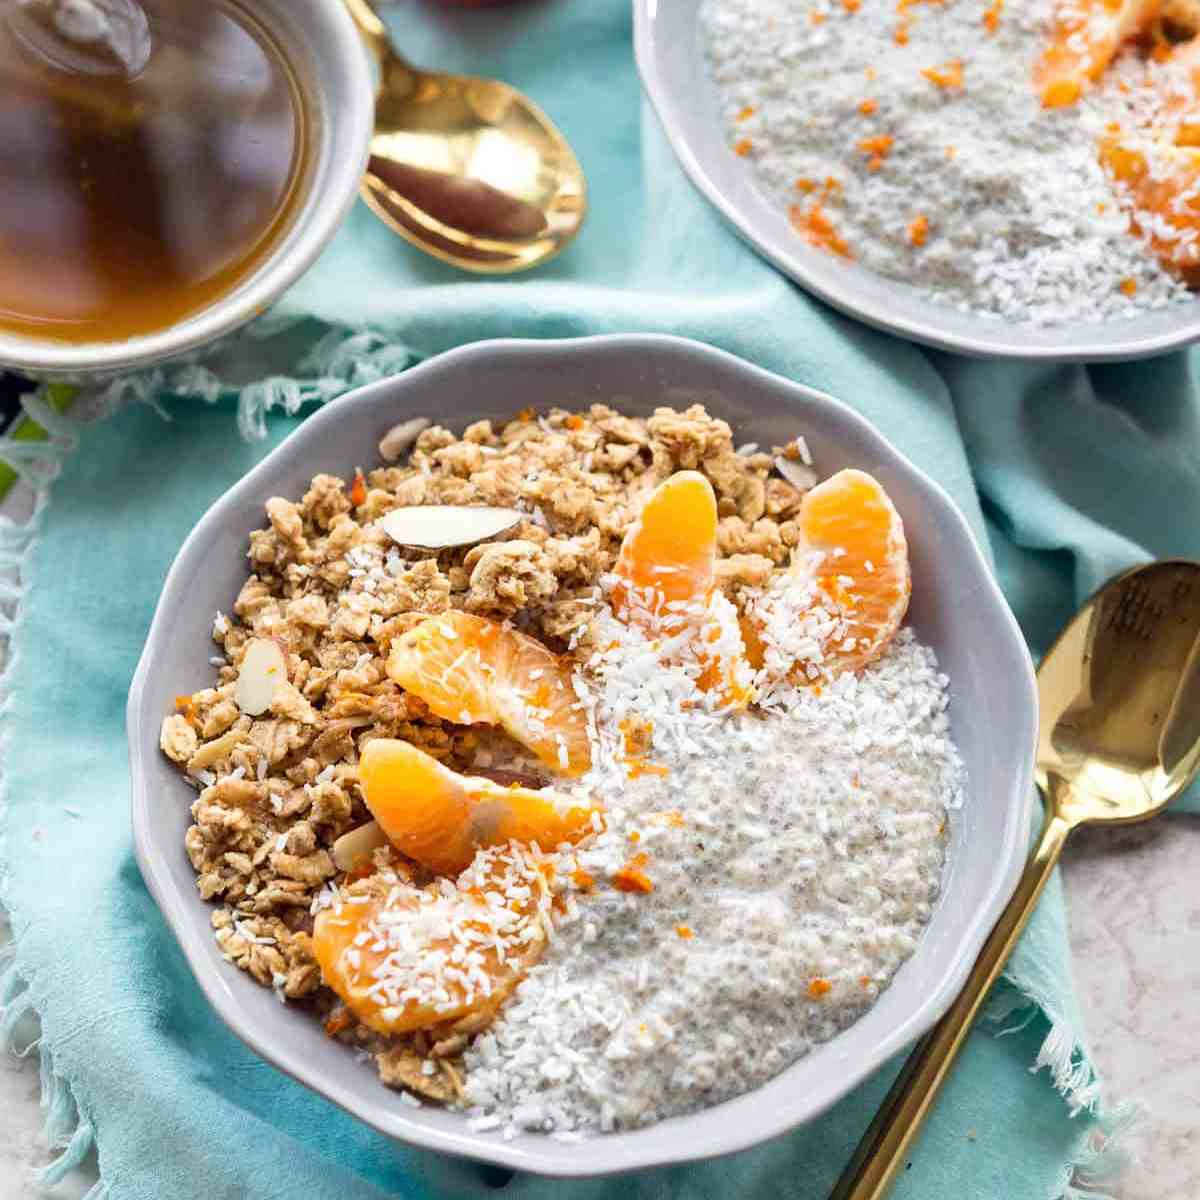 Start your day with this Dreamy Tangerine Chia Pudding, the perfect breakfast bowl! It's simple, delicious and healthy. #Vegan #Soyfree #veganyackattack